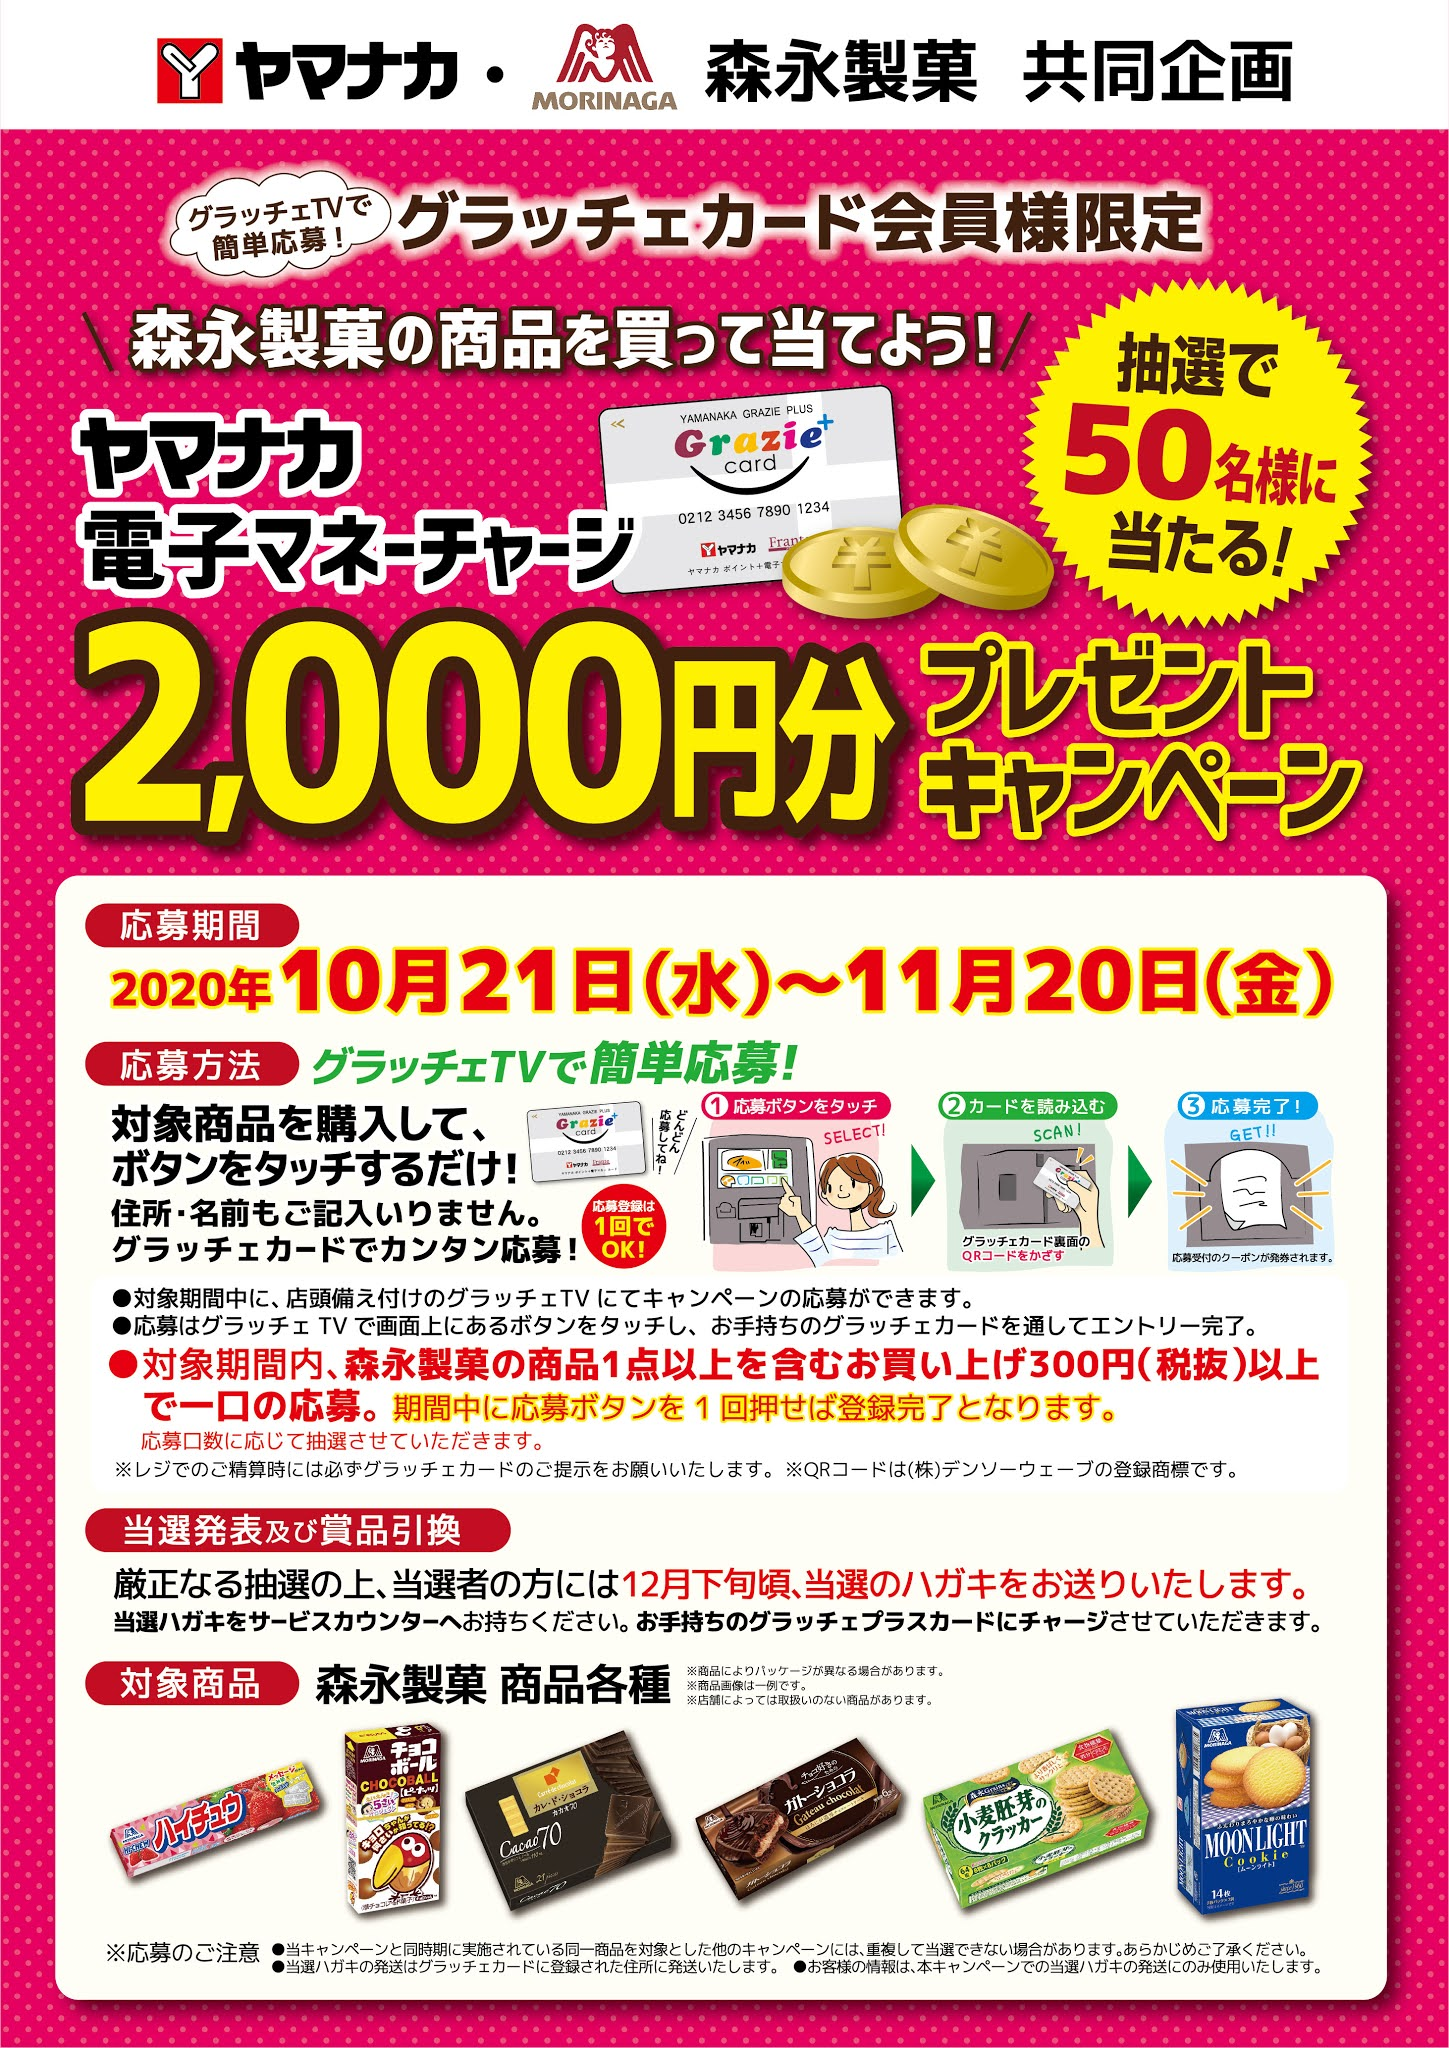 https://www.super-yamanaka.co.jp/wp/super/wp-content/uploads/2020/10/201021_grazie_campaign_morinaga.jpg